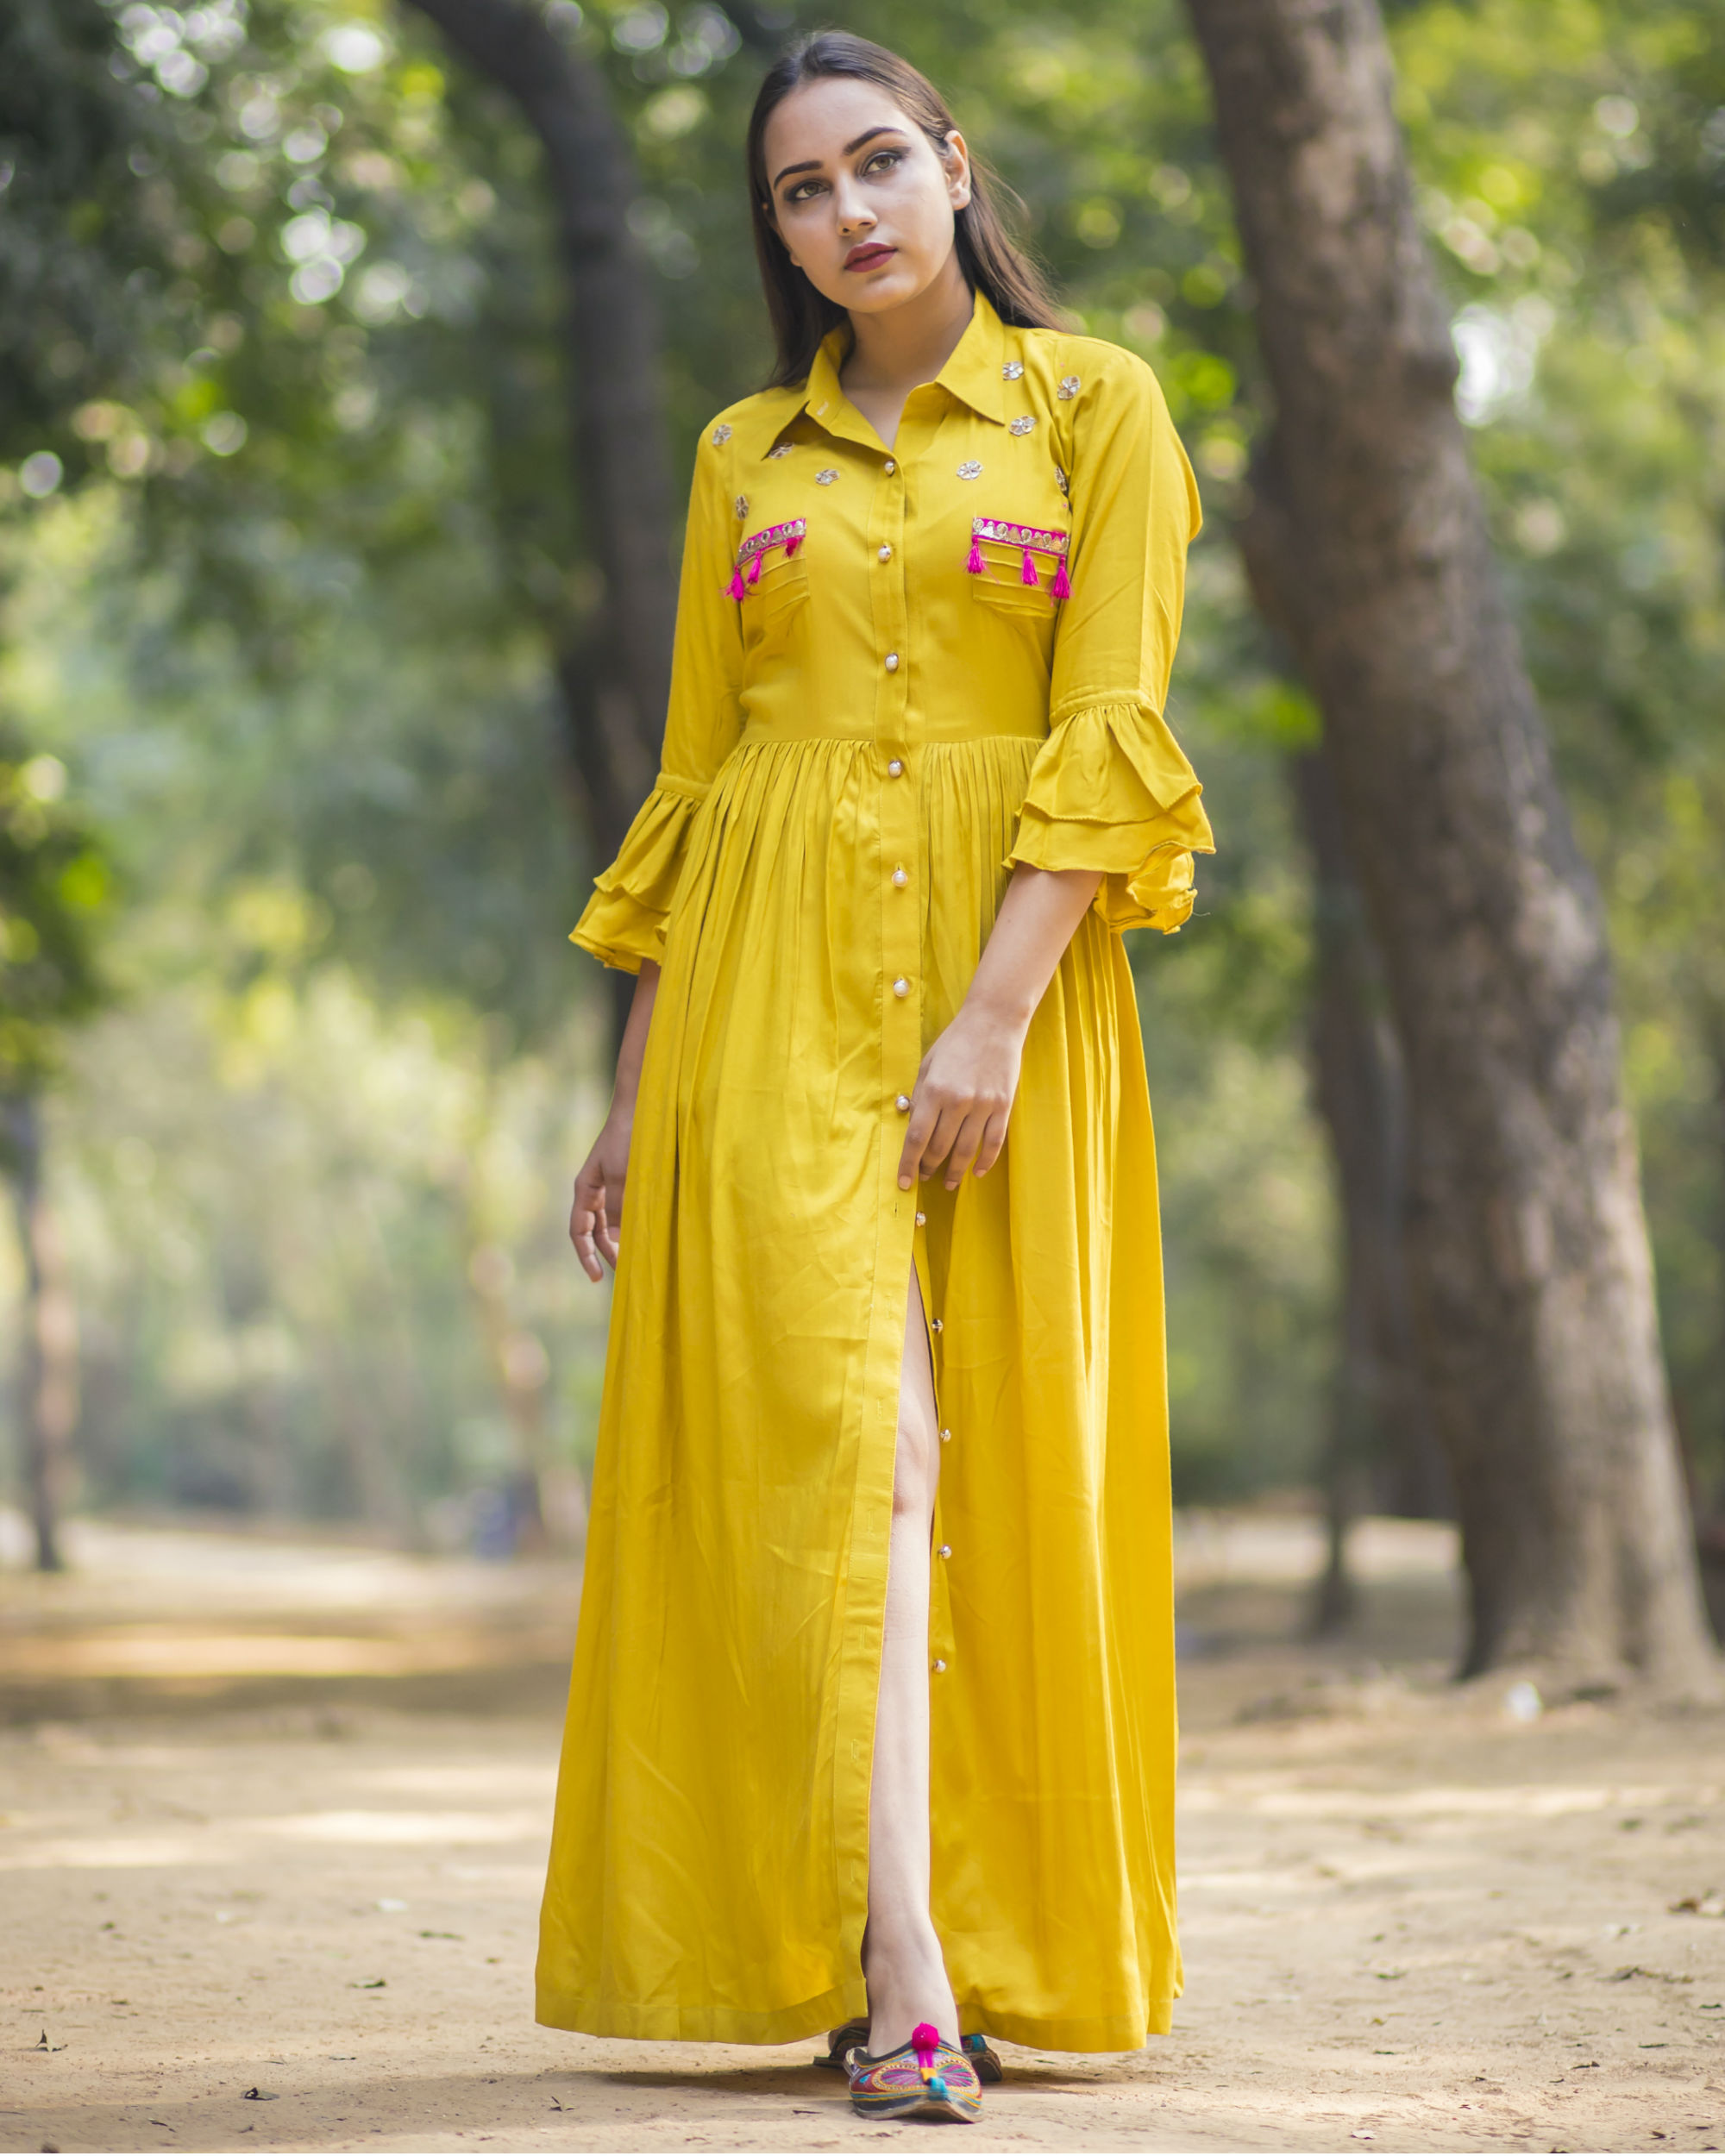 Mustard yellow shirt dress